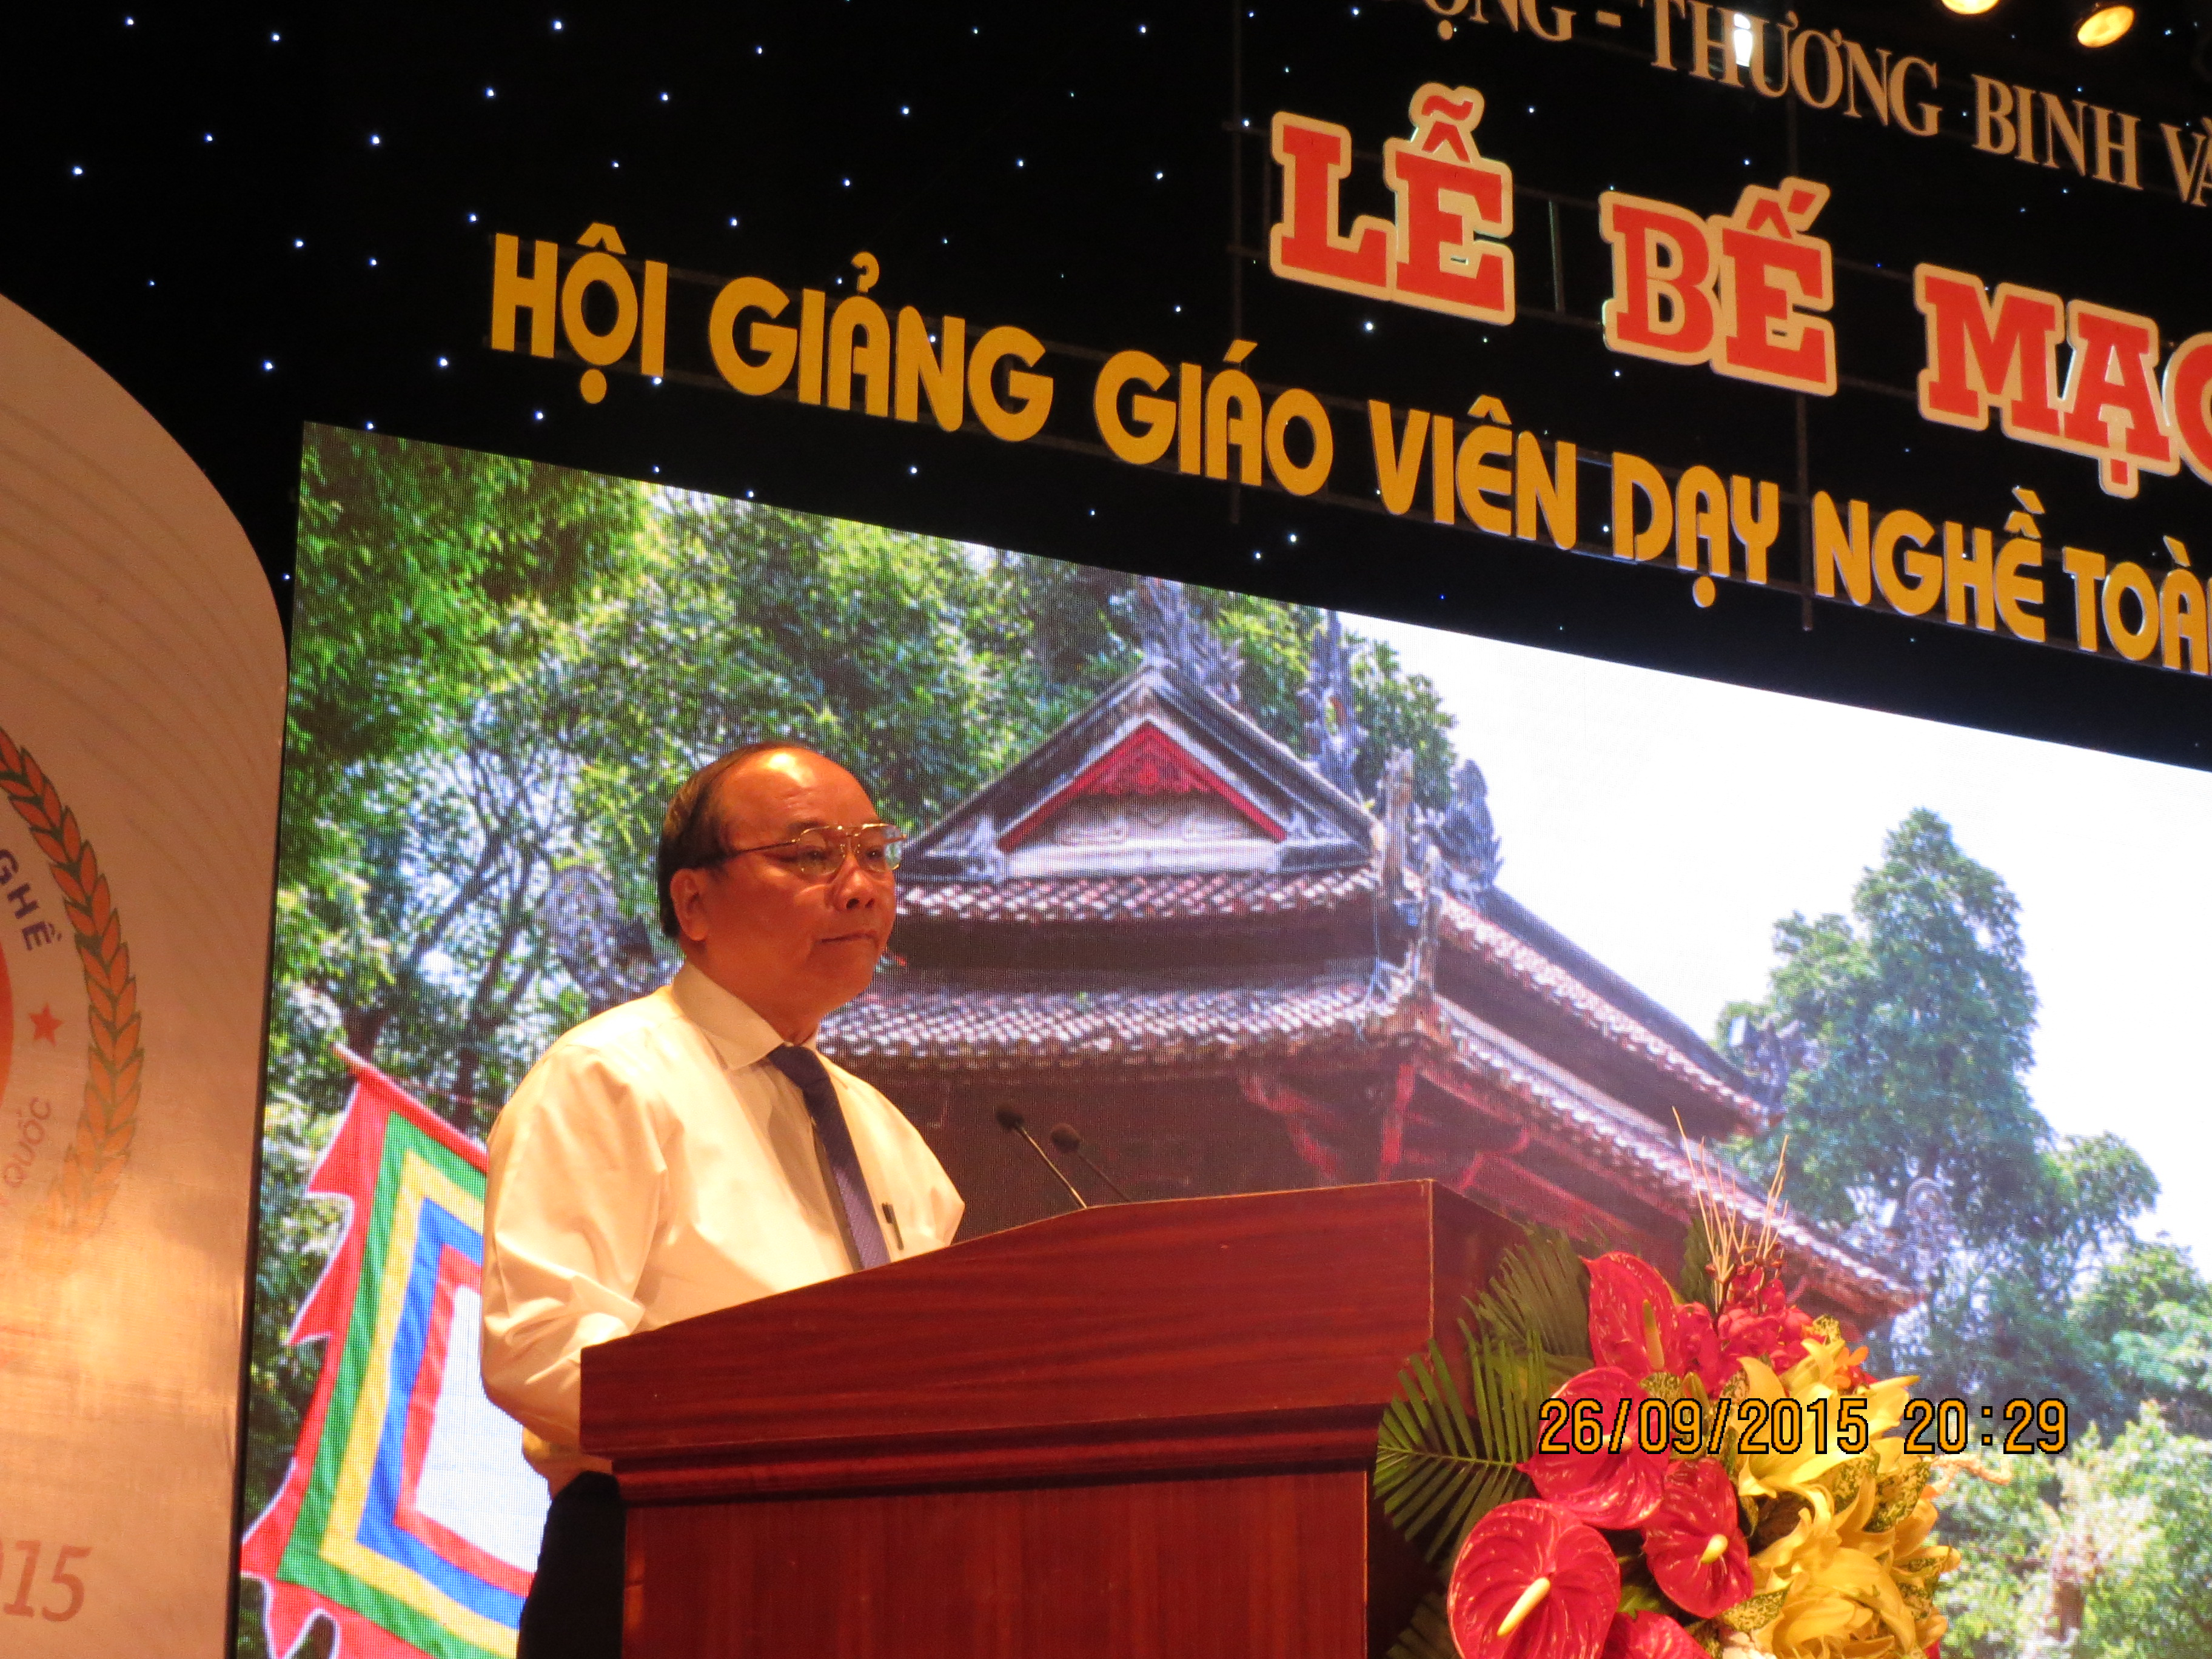 Member of Political Bureau, Deputy Prime Minister Nguyen Xuan Phuc delivers a speech at closing event